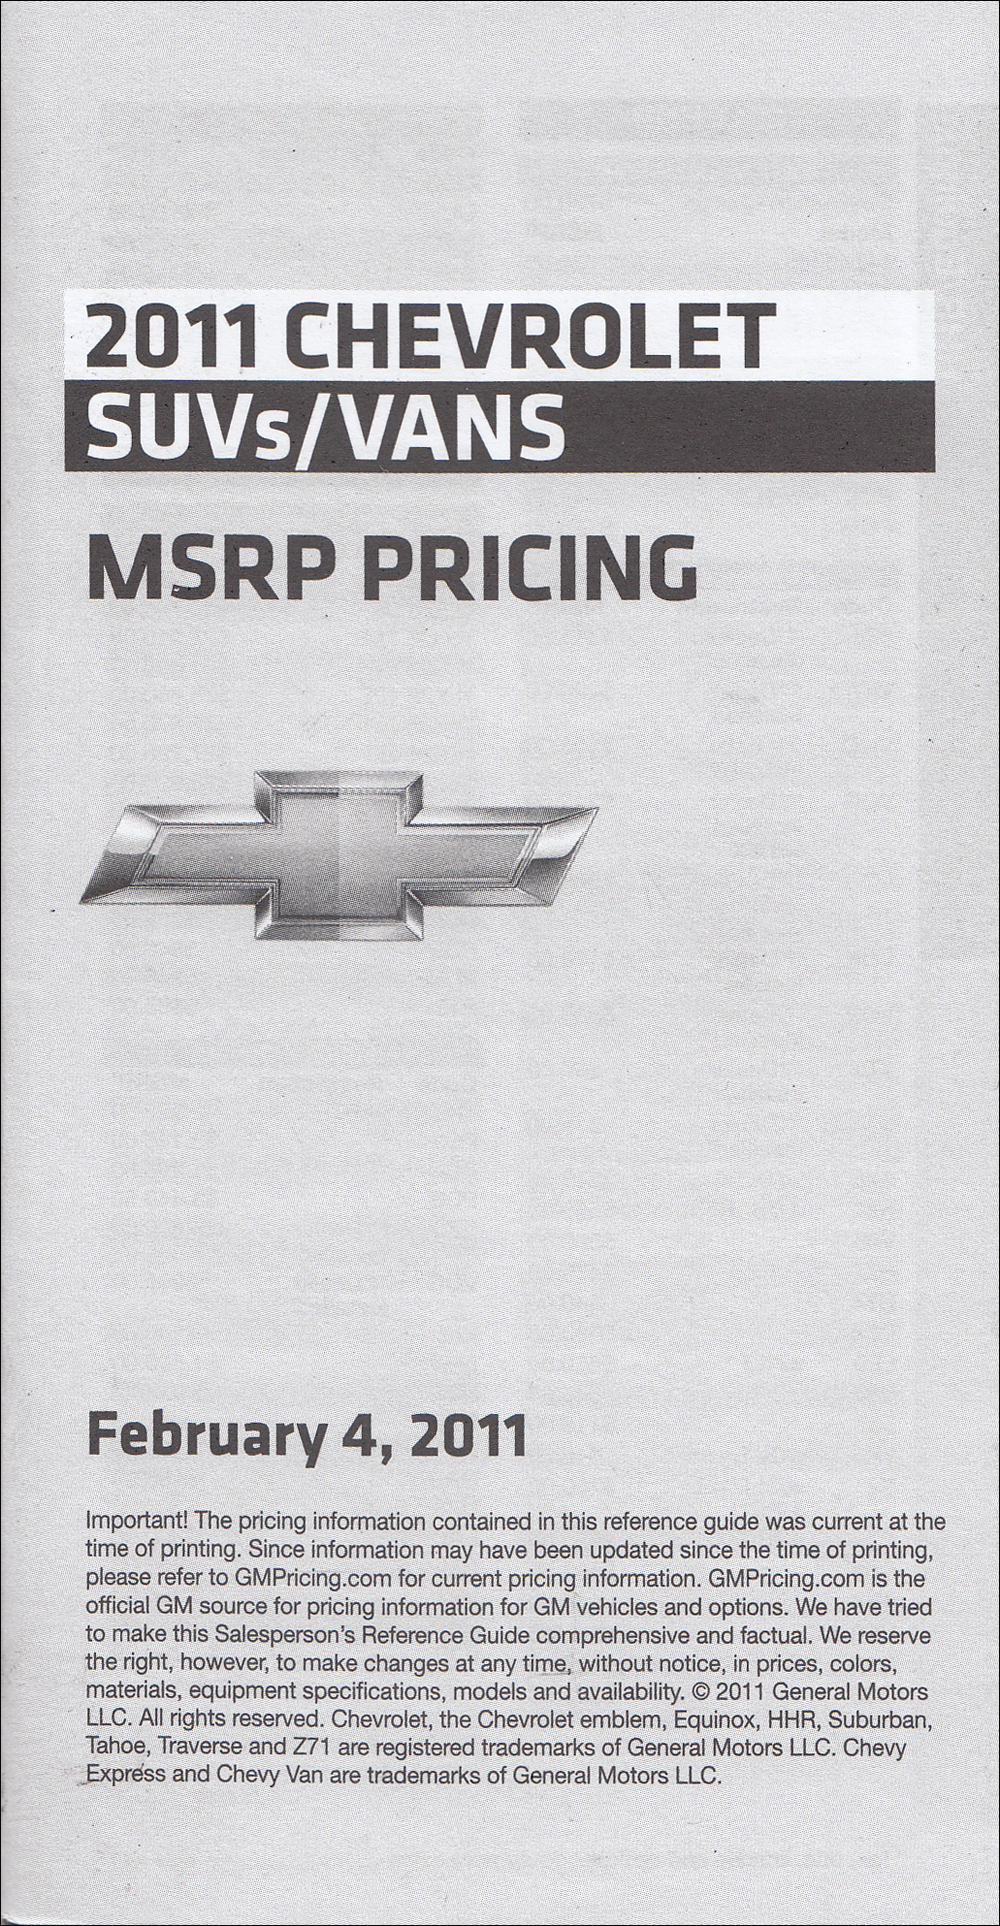 2011 Chevrolet SUVs & Vans Price List Dealer Album Original Insert